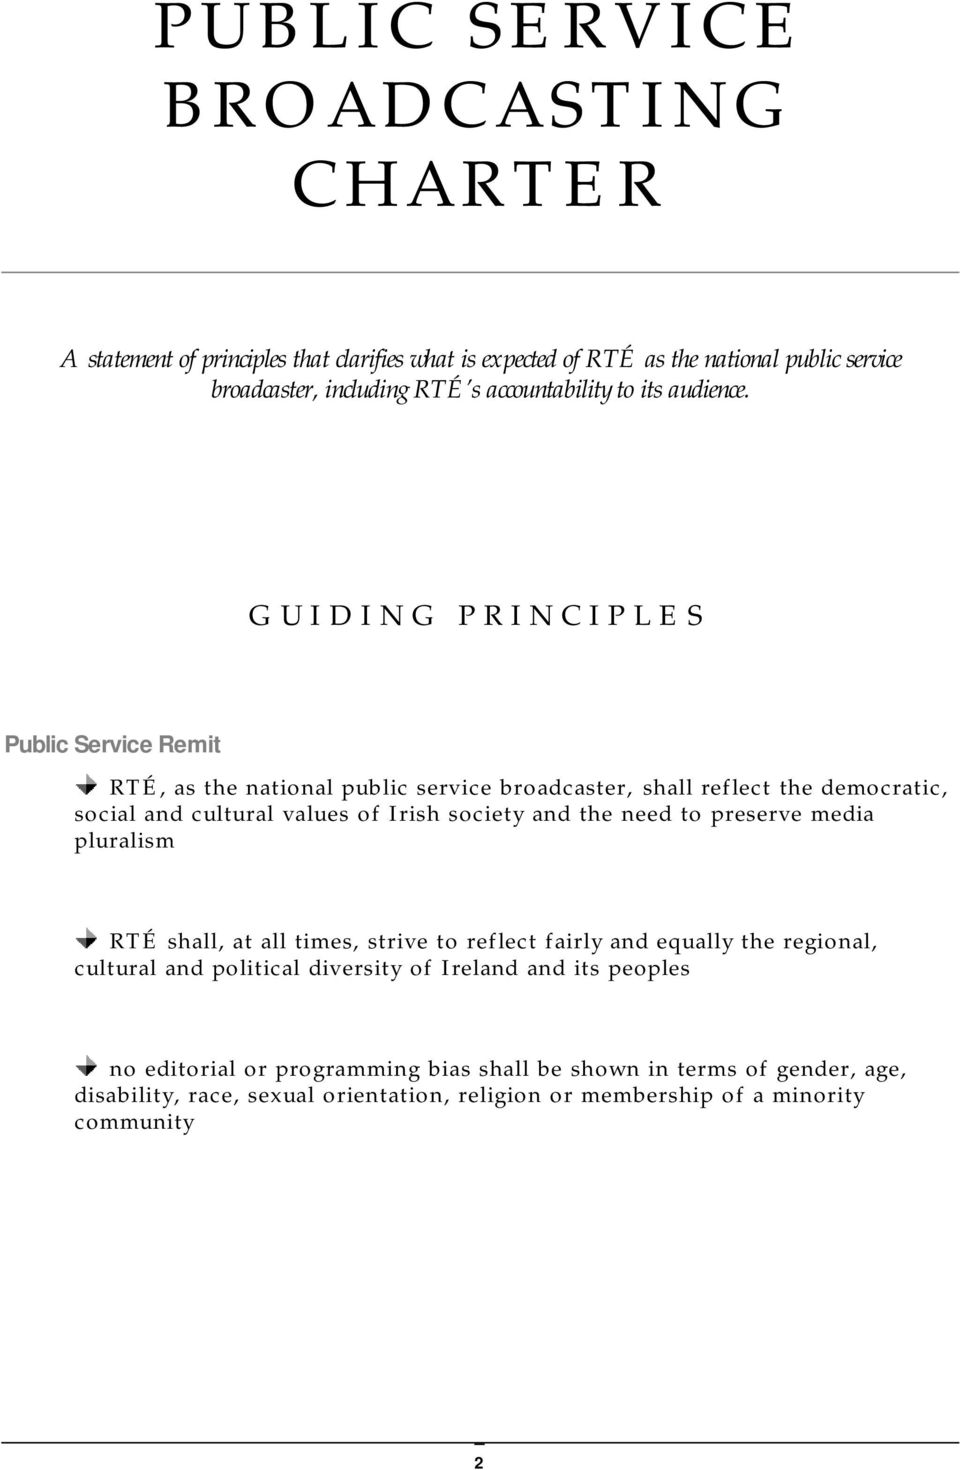 GUIDING PRINCIPLES Public Service Remit RTÉ, as the national public service broadcaster, shall reflect the democratic, social and cultural values of Irish society and the